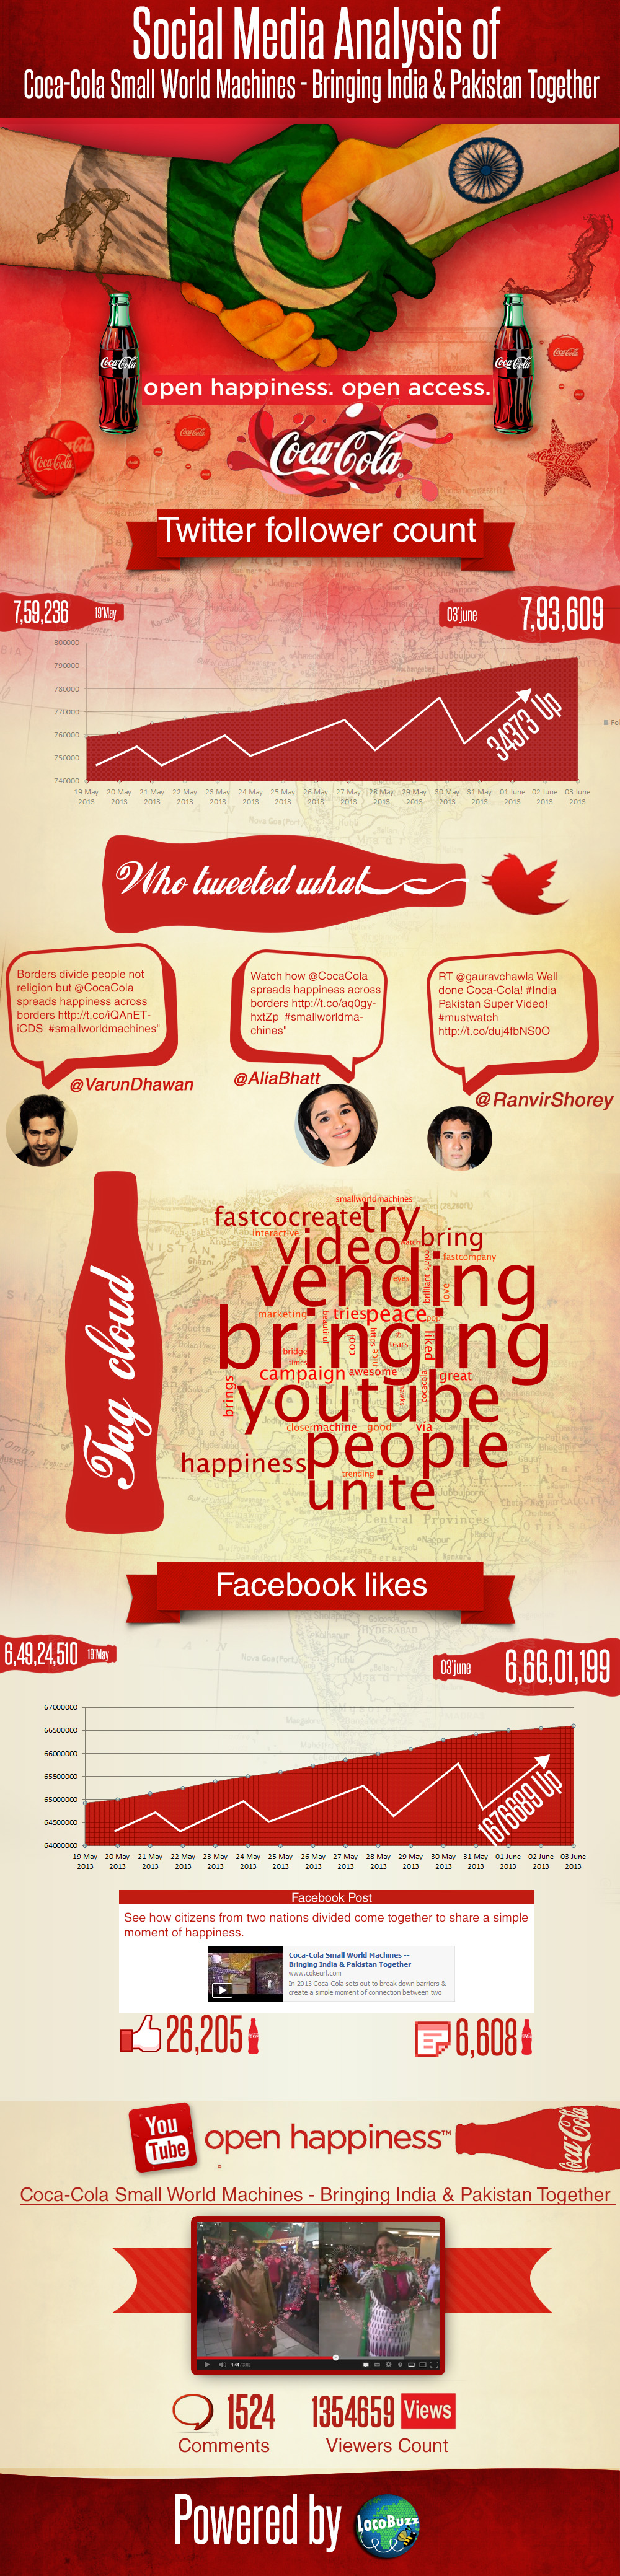 Social Media Analysis Coca Cola Infographic